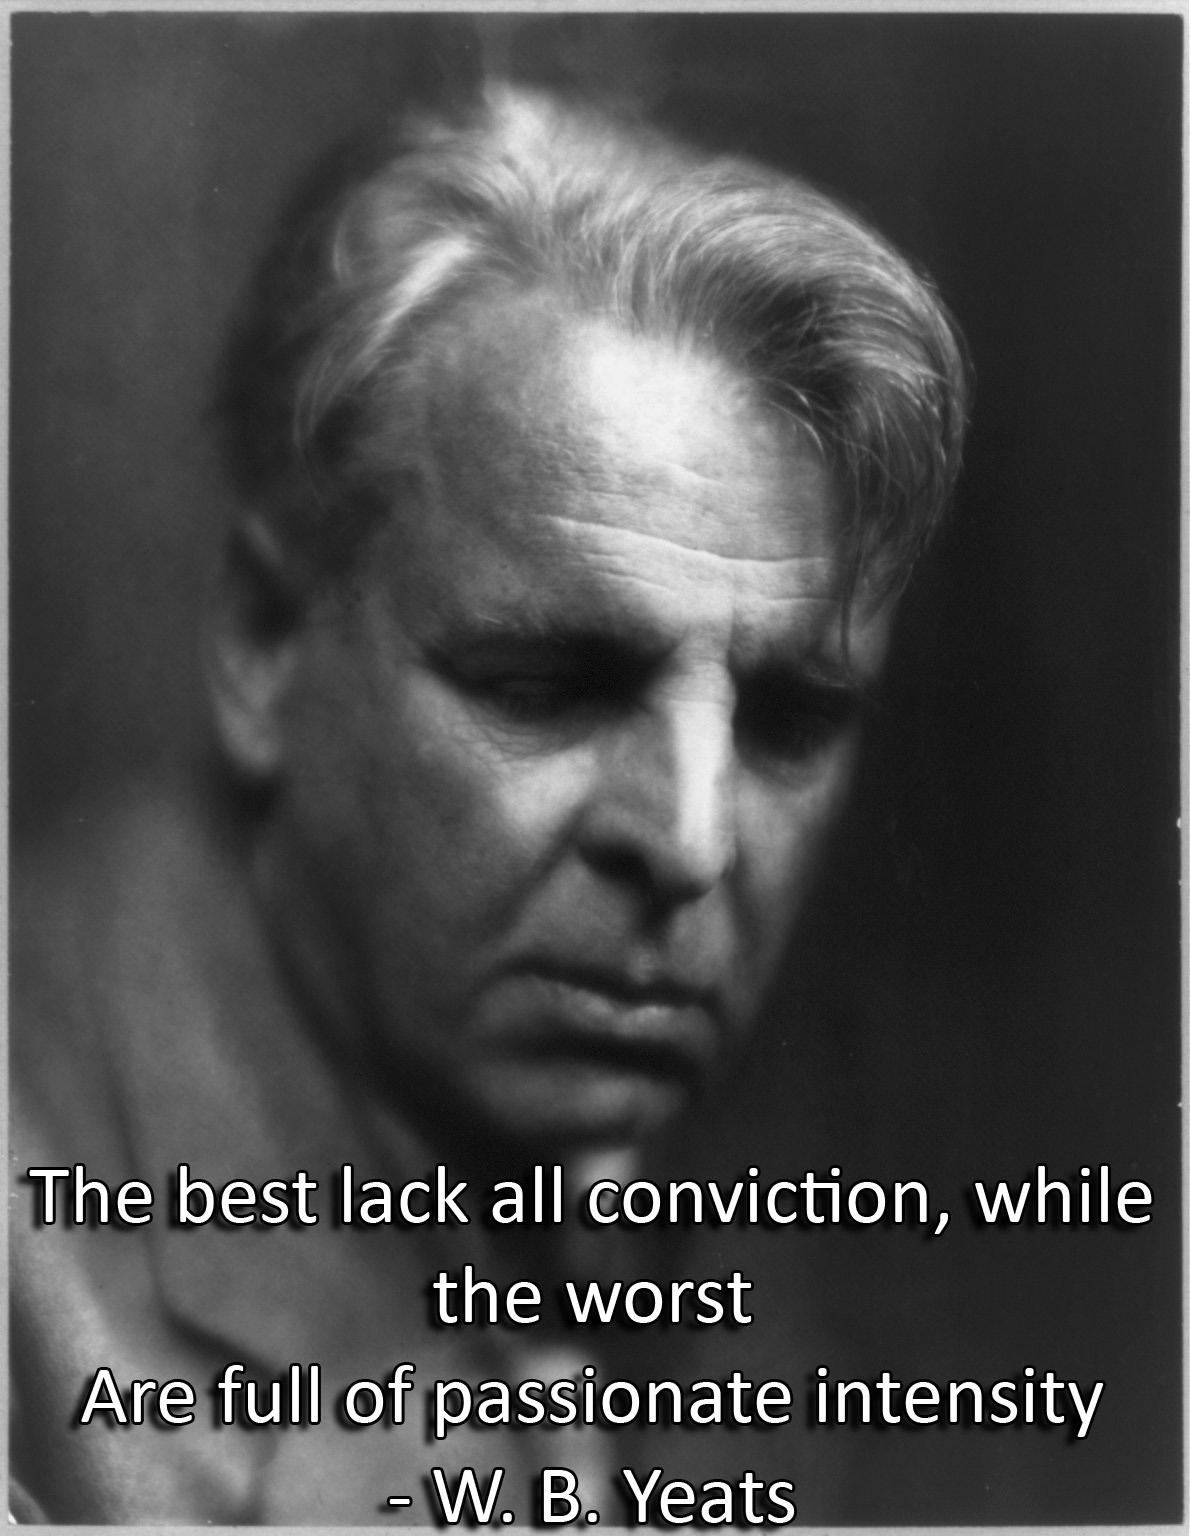 The best lack all conviction, while the worst Are full of passionate intensity. – W. B. Yeats [1190X1536]